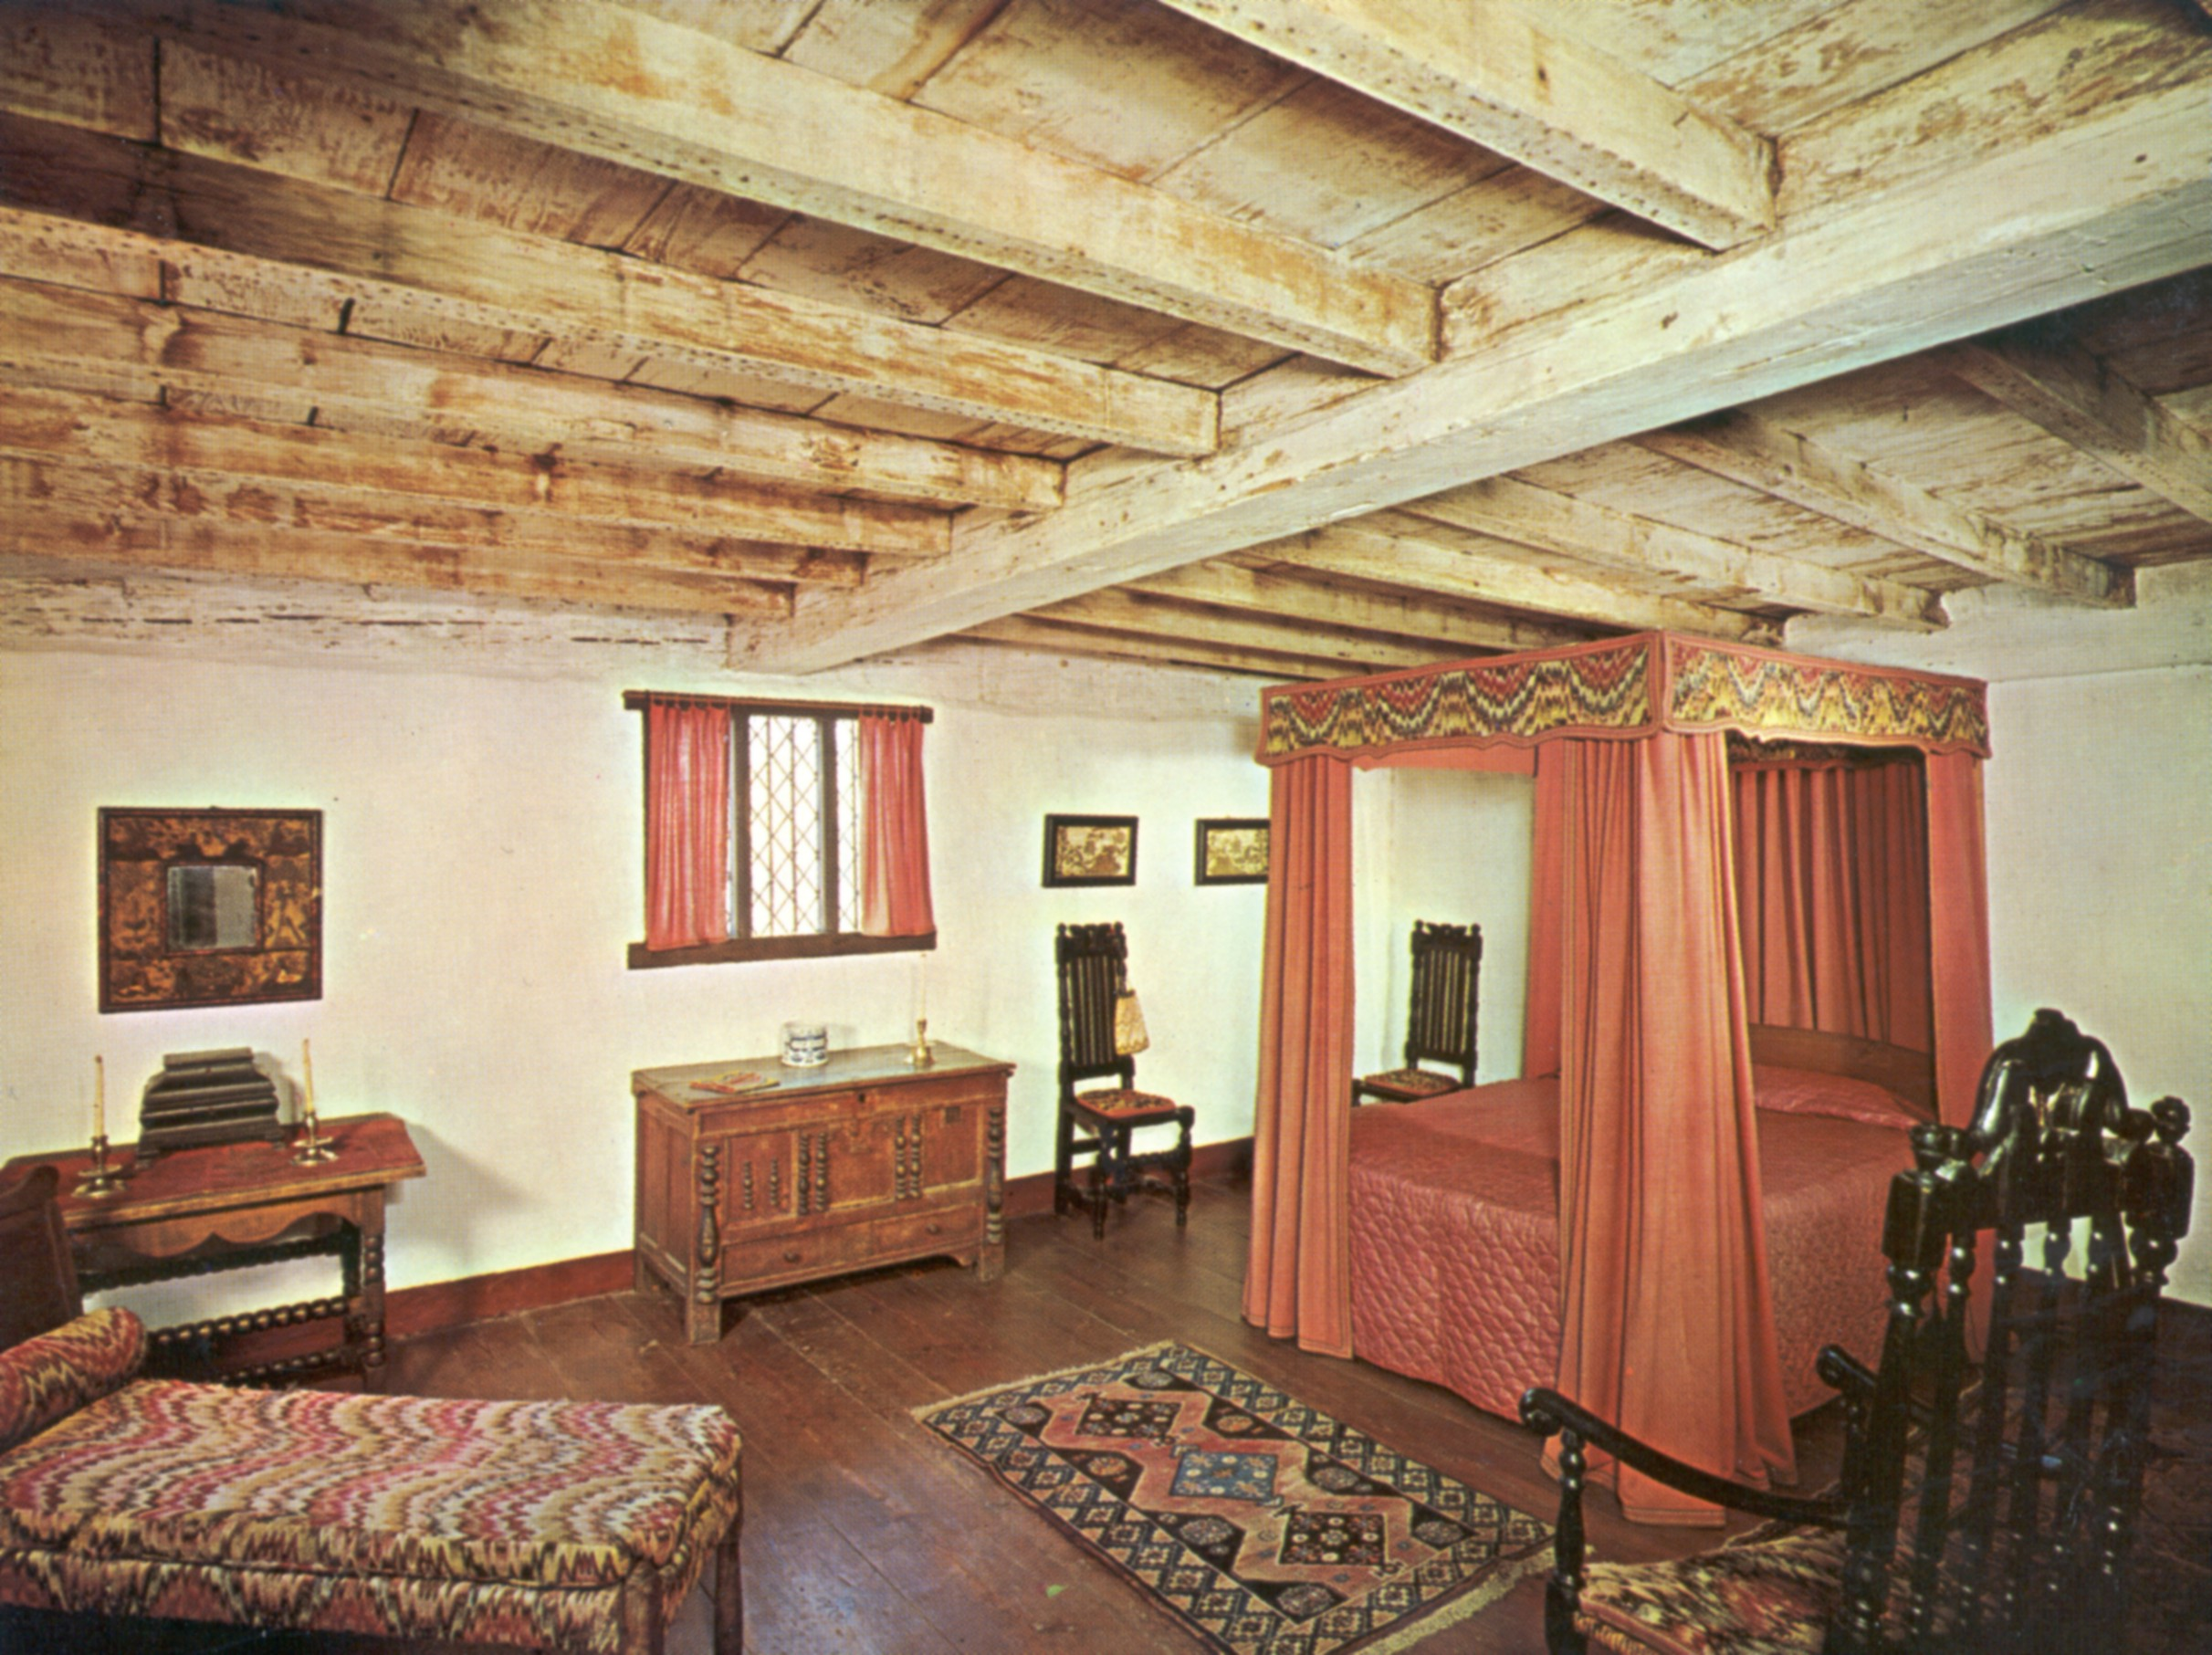 The second floor best bed chamber features 18th century furnishings and hewed, exposed beams.